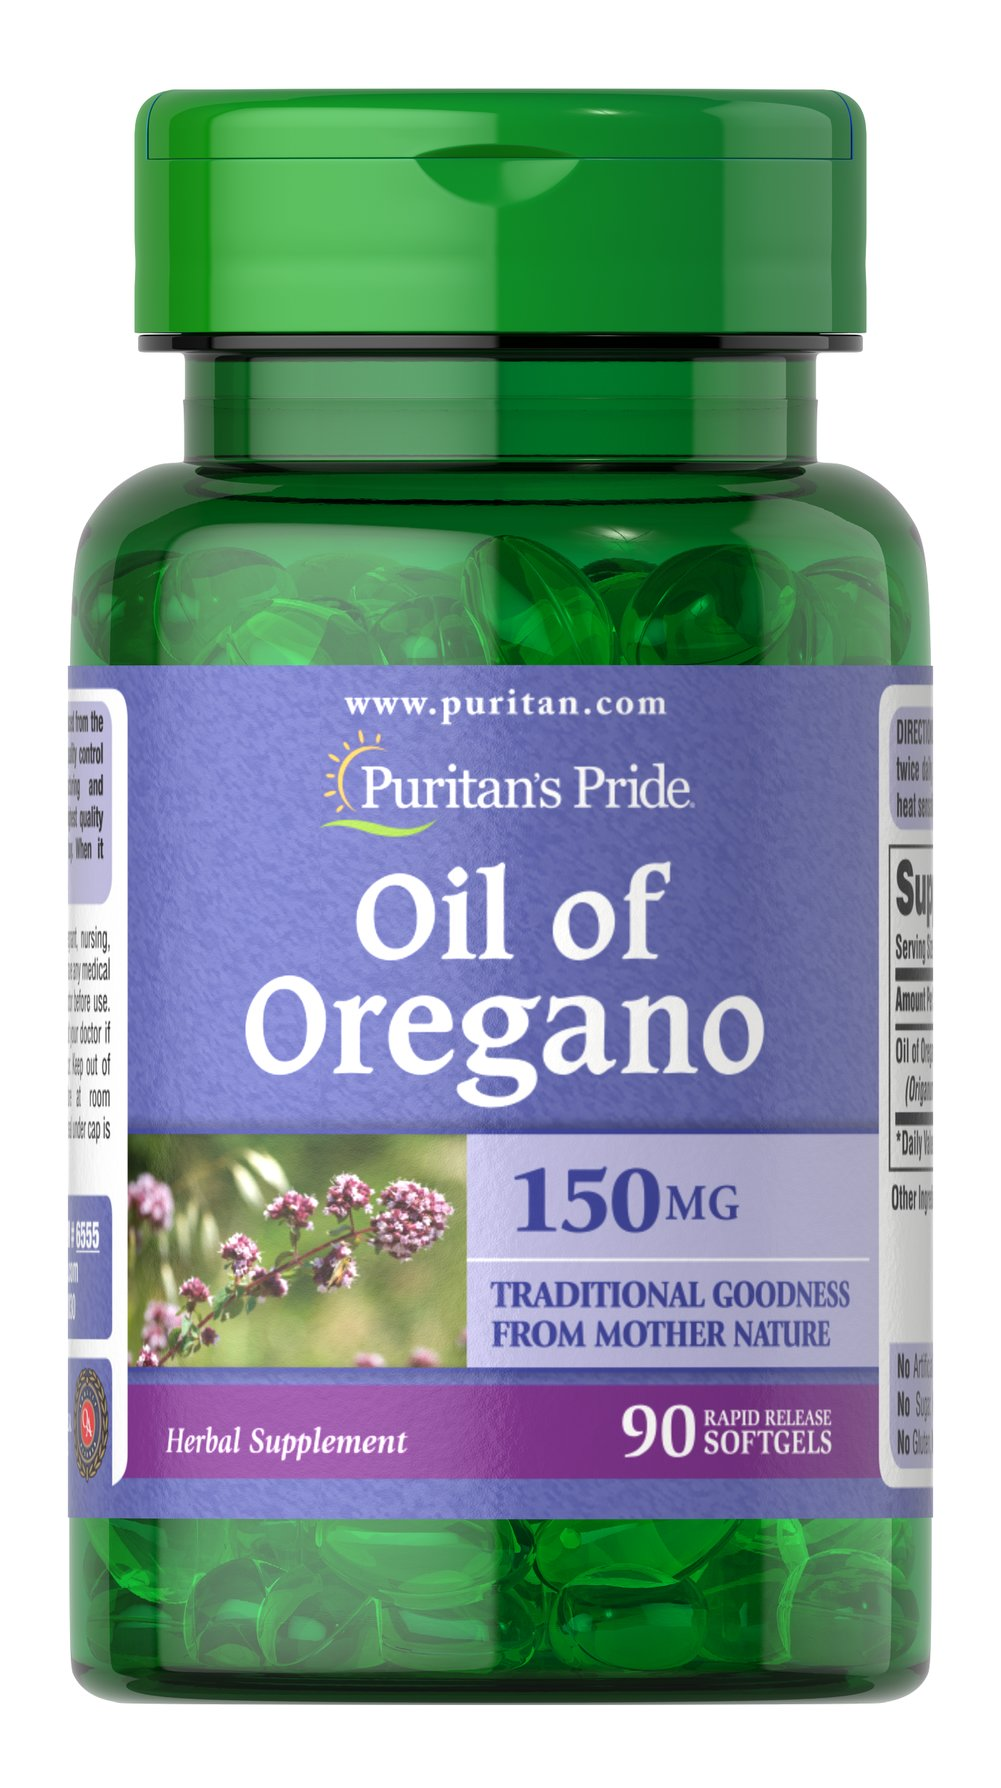 "Oil of Oregano Extract 1500 mg <p>Oil of Oregano equivalent to 1500 mg fresh oregano</p><p>Oil of Oregano has been held in high regard for its holistic qualities. It contains a number of valuable constituents and includes naturally occurring antioxidant phytochemicals.** Our high-quality softgels make it easy to obtain ""traditional goodness from Mother Nature."" </p>   90 Softgels 1500 mg $7.99"